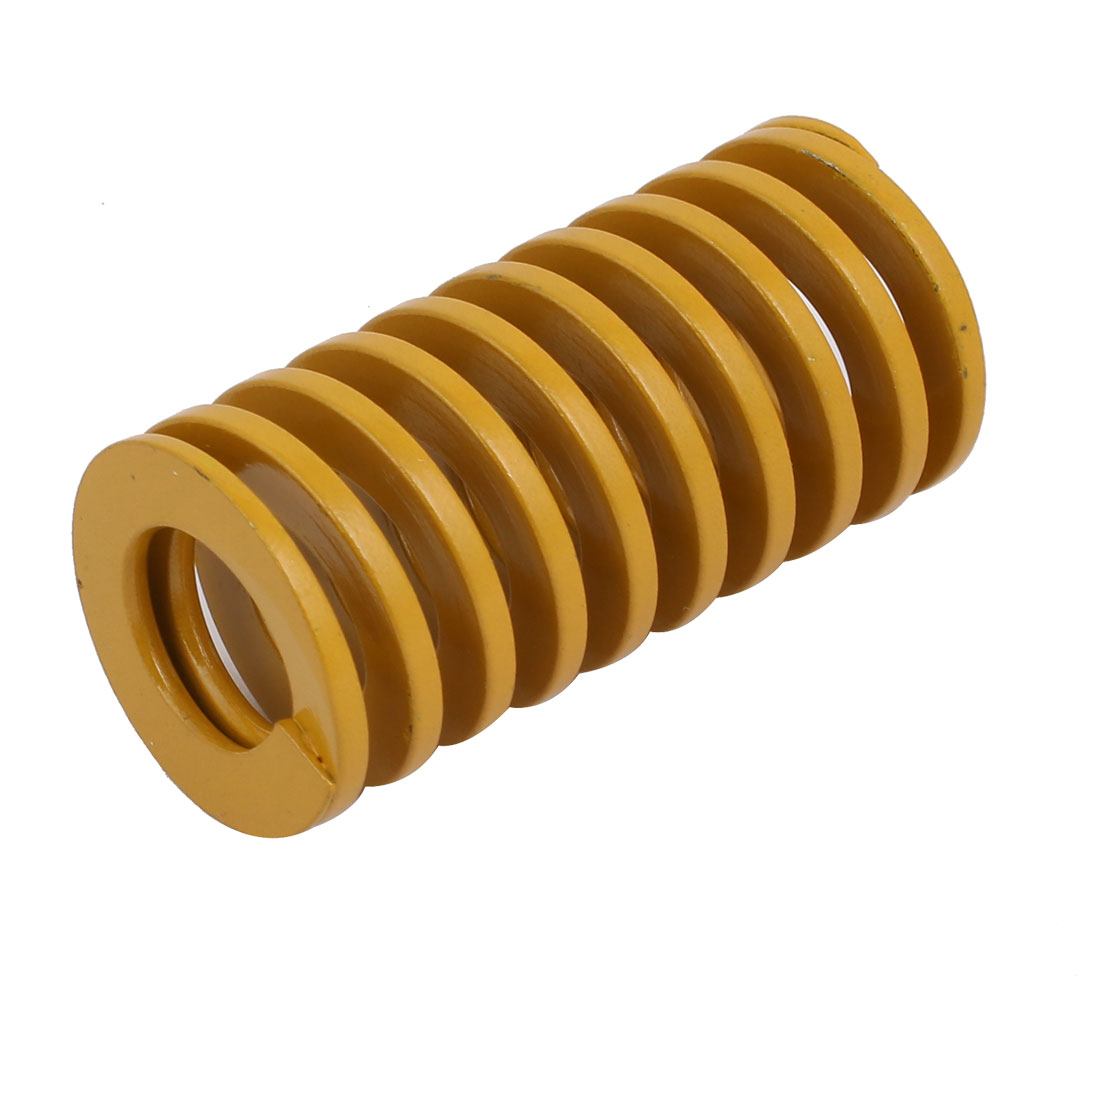 30mm Outer Dia 60mm Length Light Load Compression Rectangle Die Spring